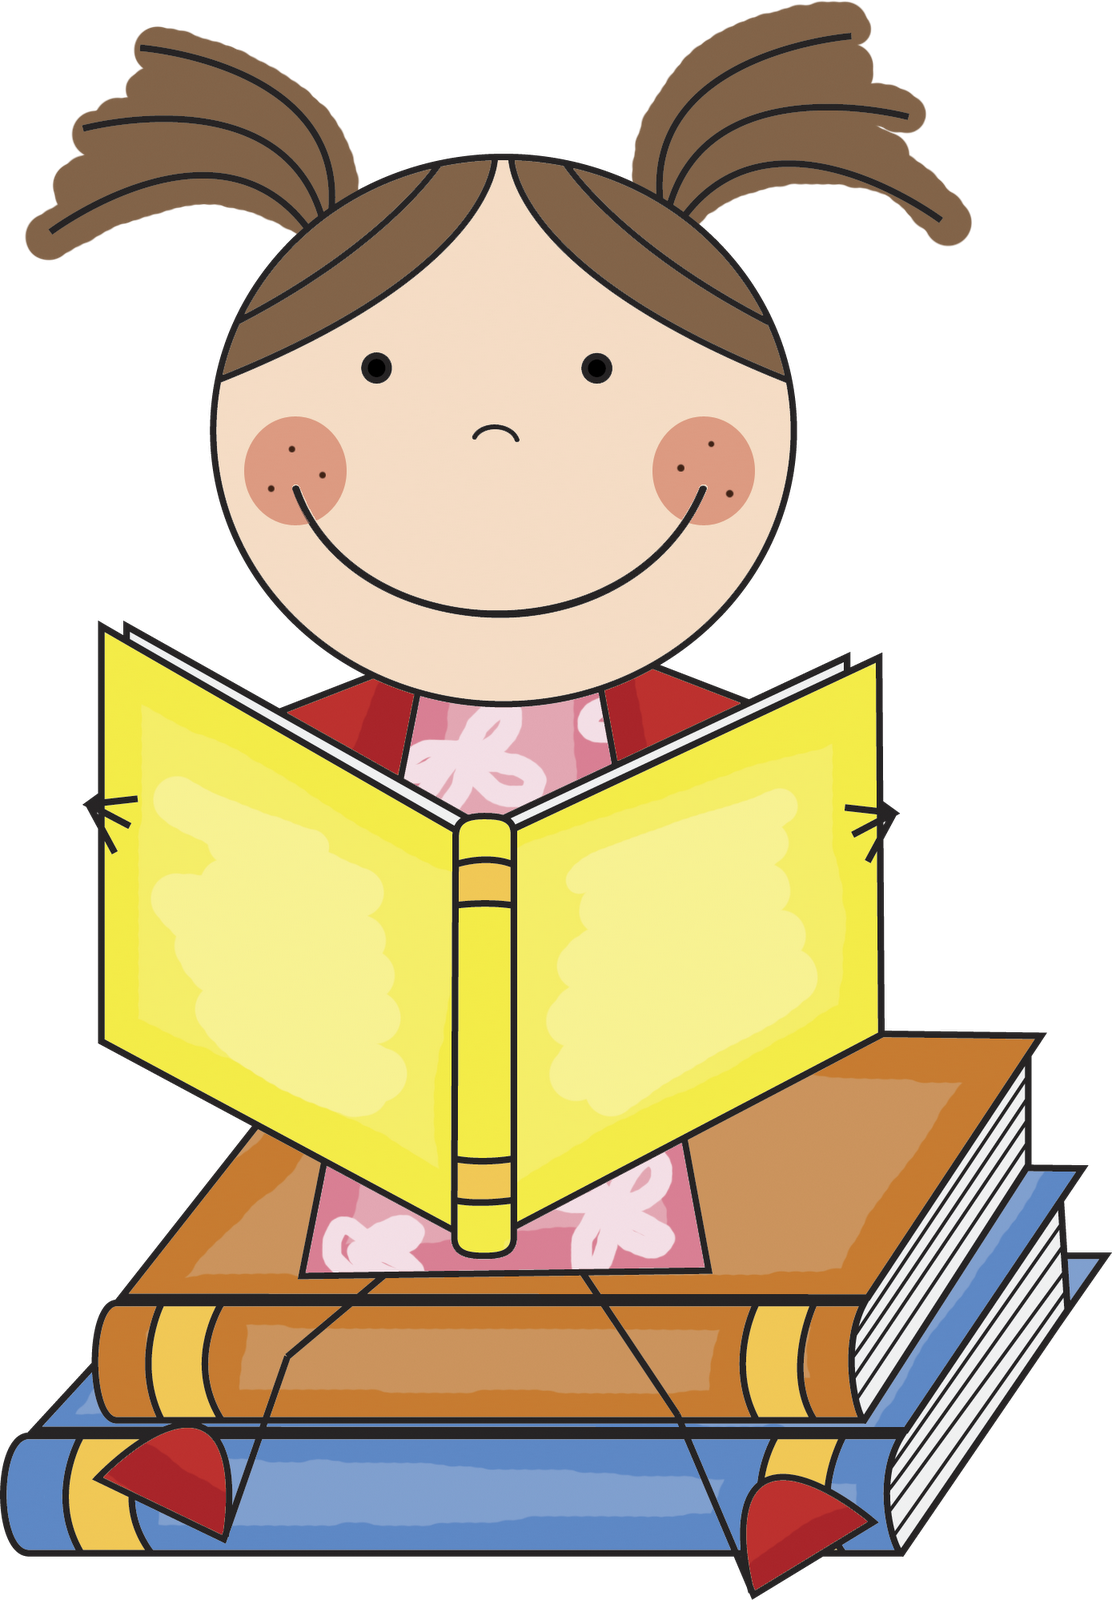 Girl holding reading book clipart clip art transparent library row of kids books clipart. read me stories kids books. color ... clip art transparent library